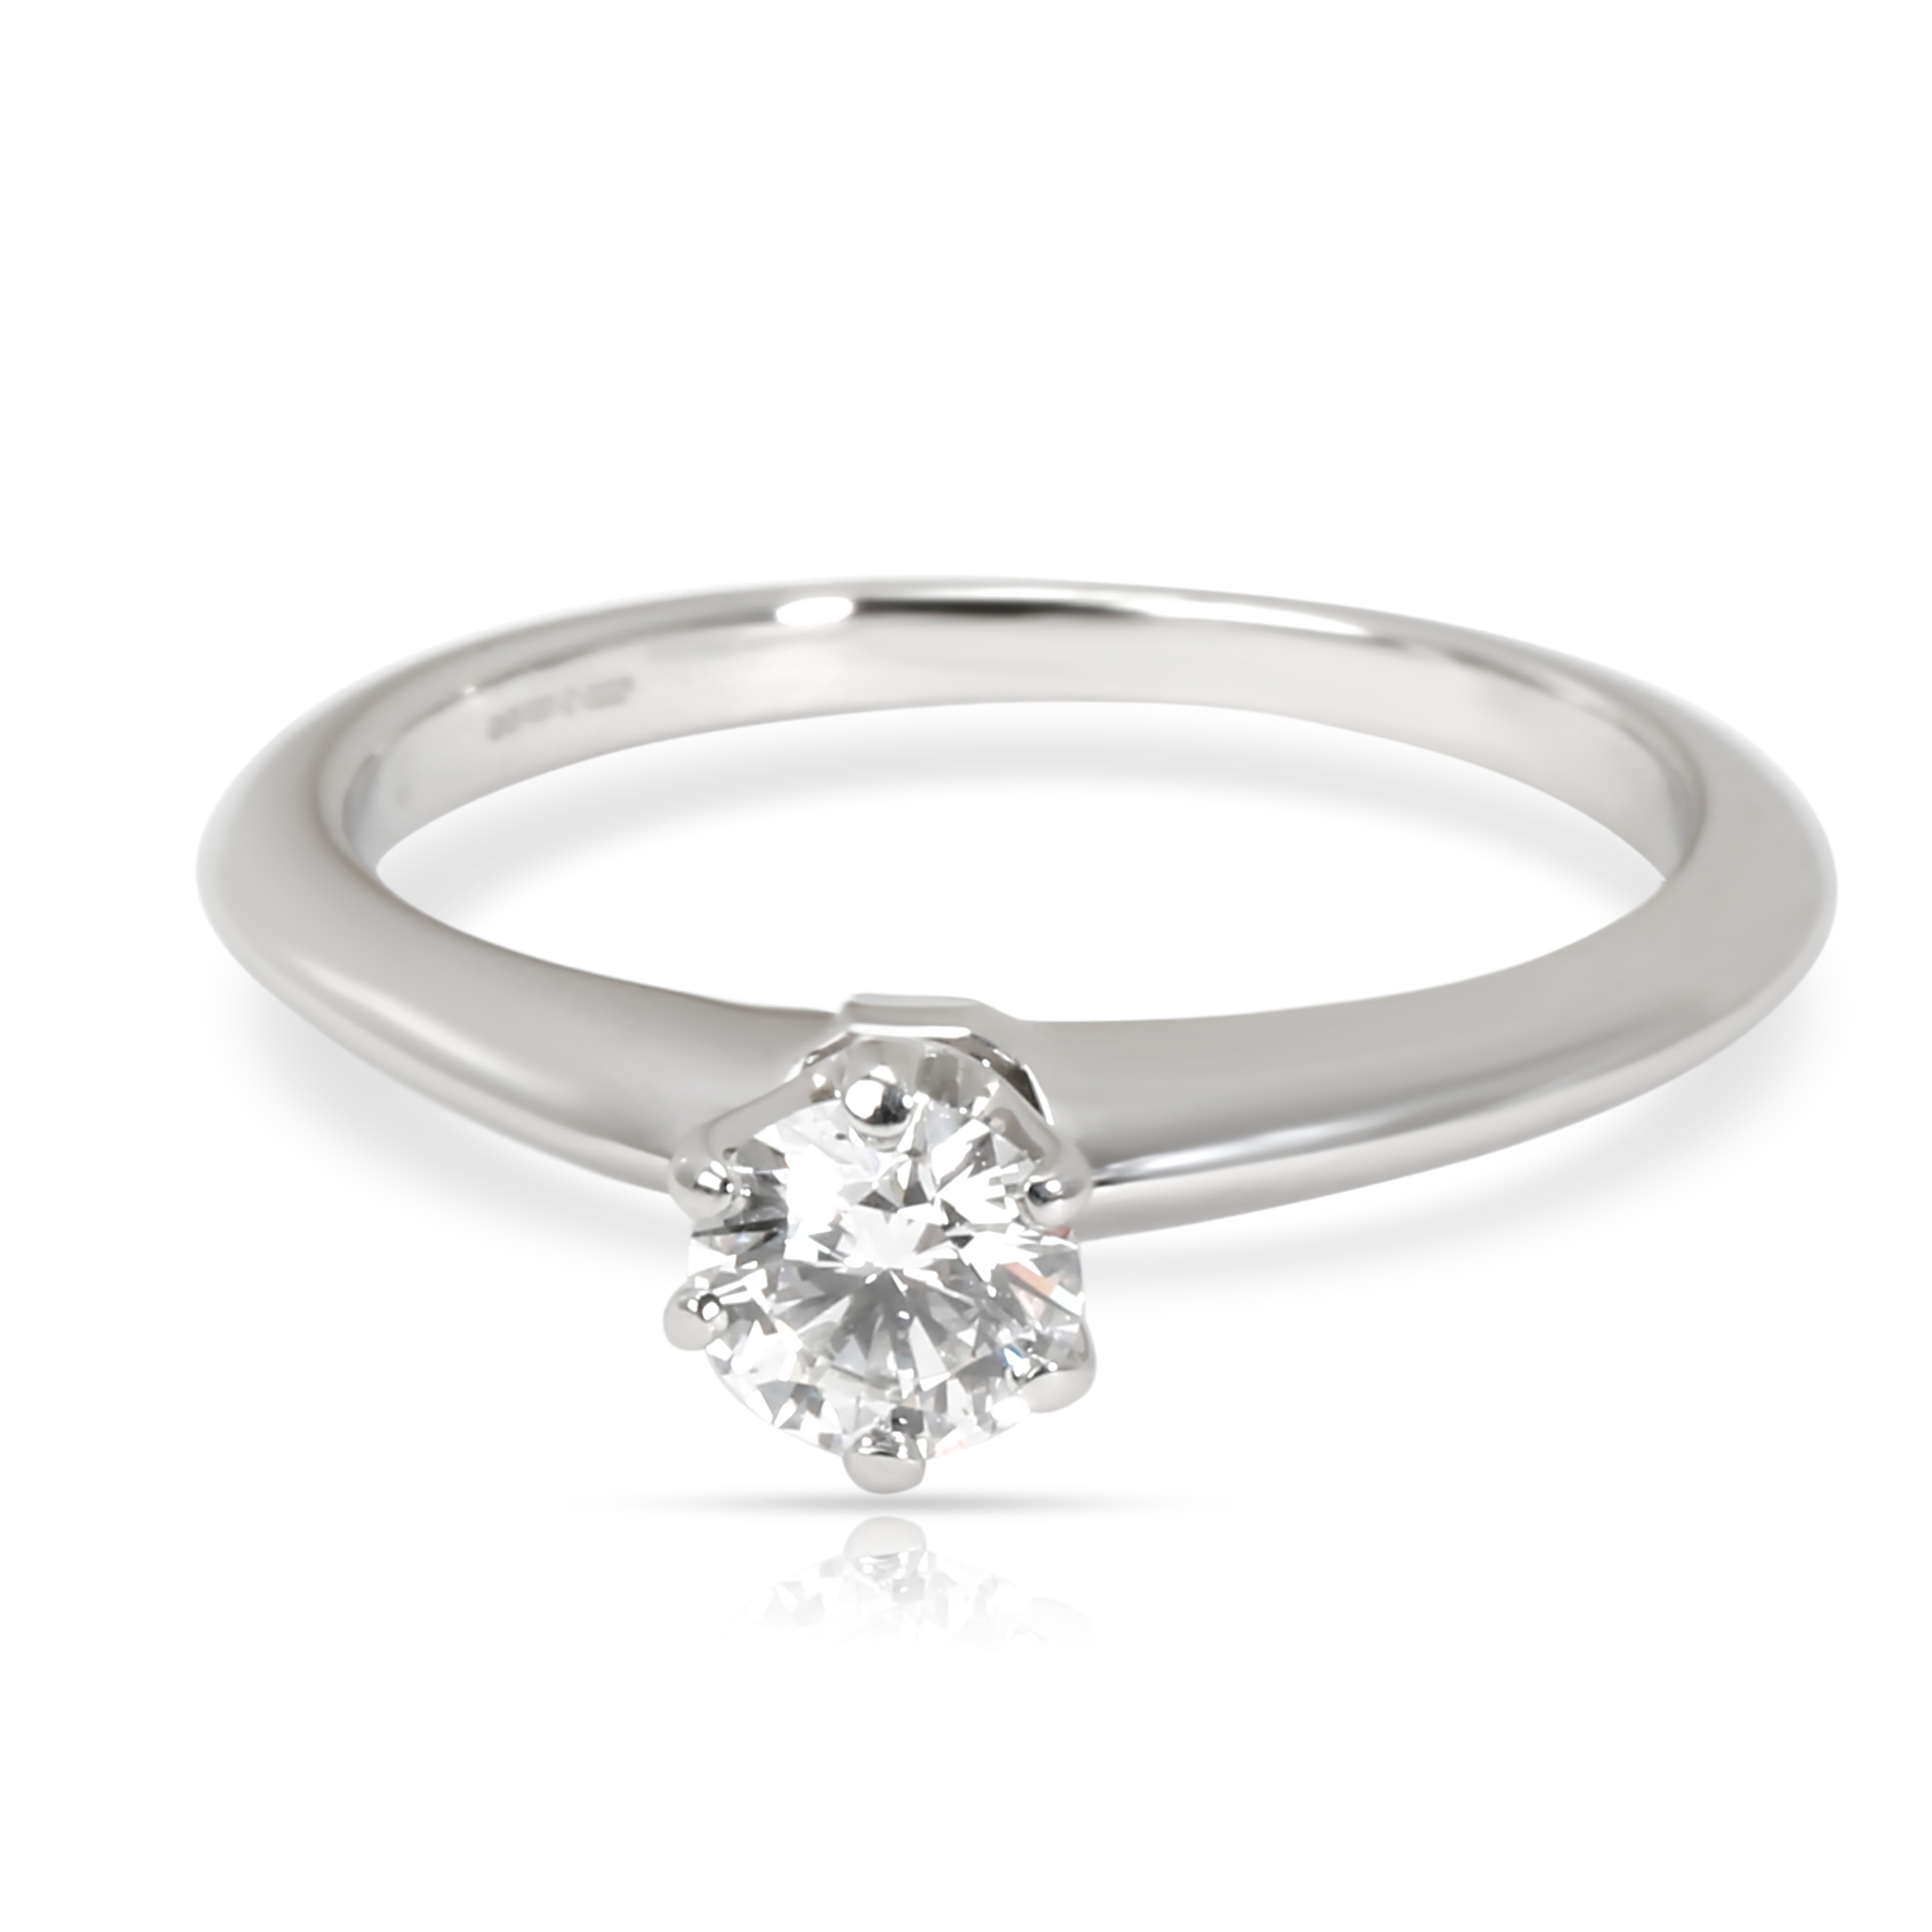 a056bcc75 Tiffany & Co. Solitaire Diamond Engagement Ring in Platinum E VVS2 ...